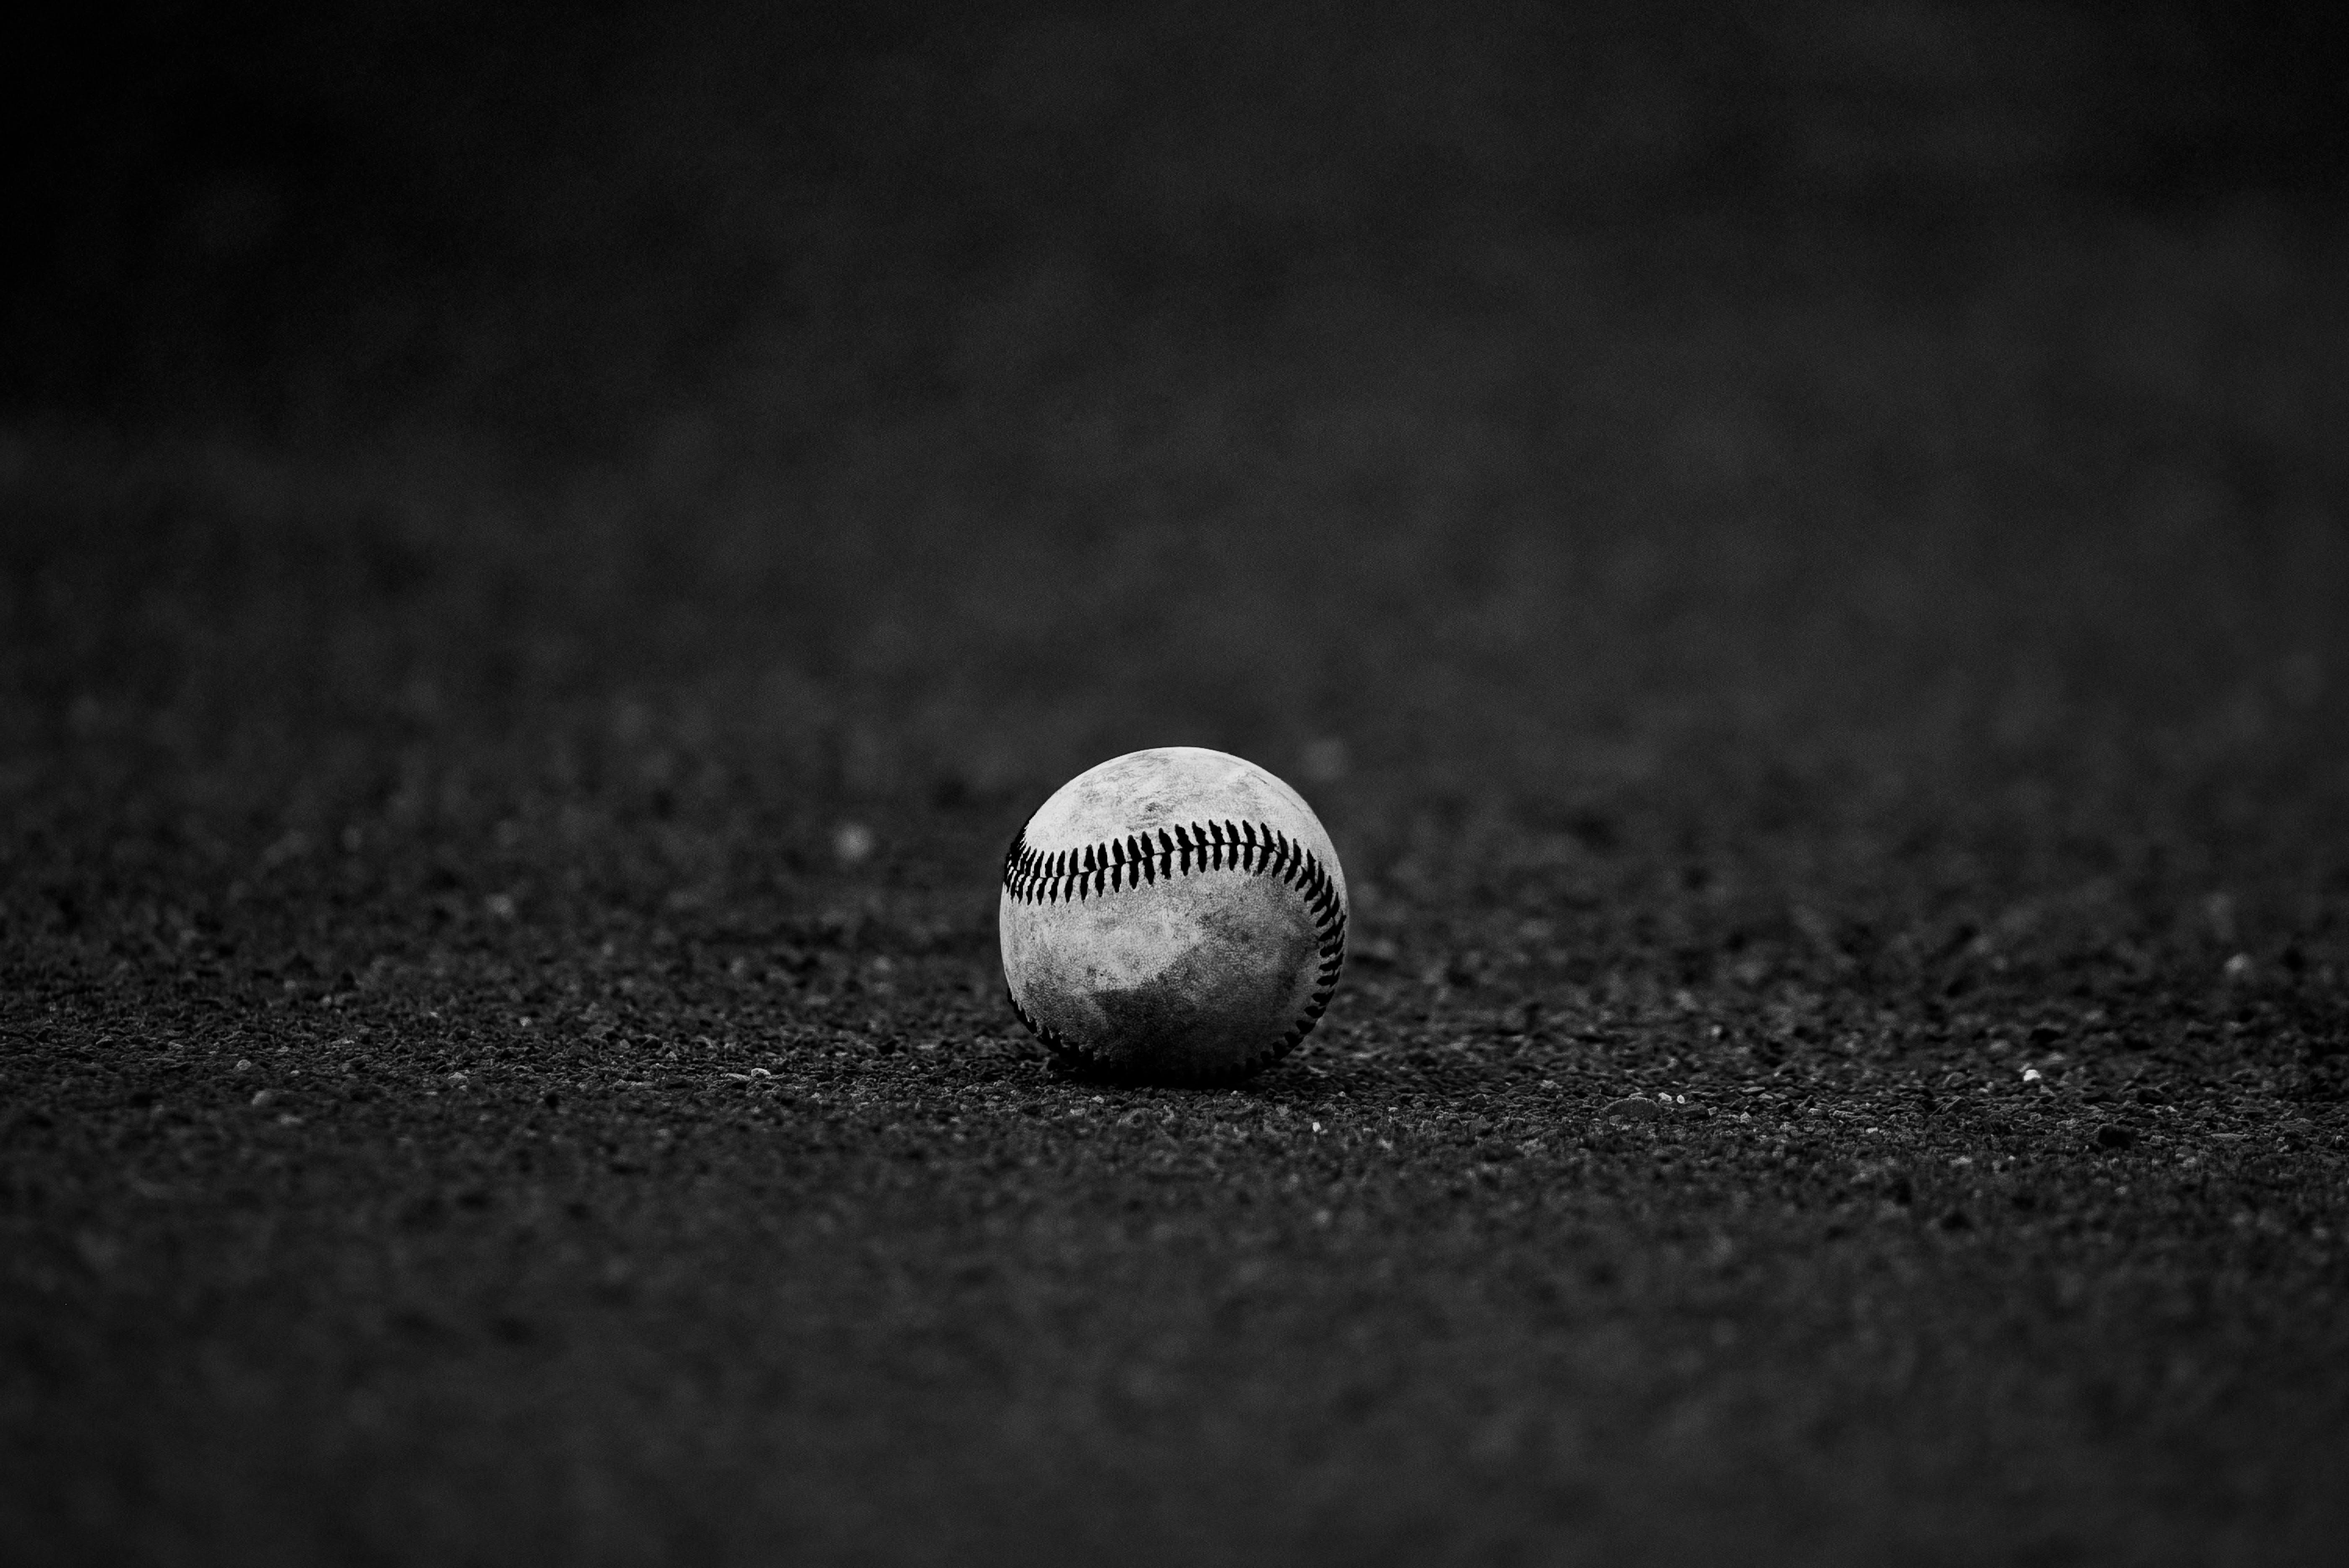 Selective Focus Grayscale Photography of Baseball